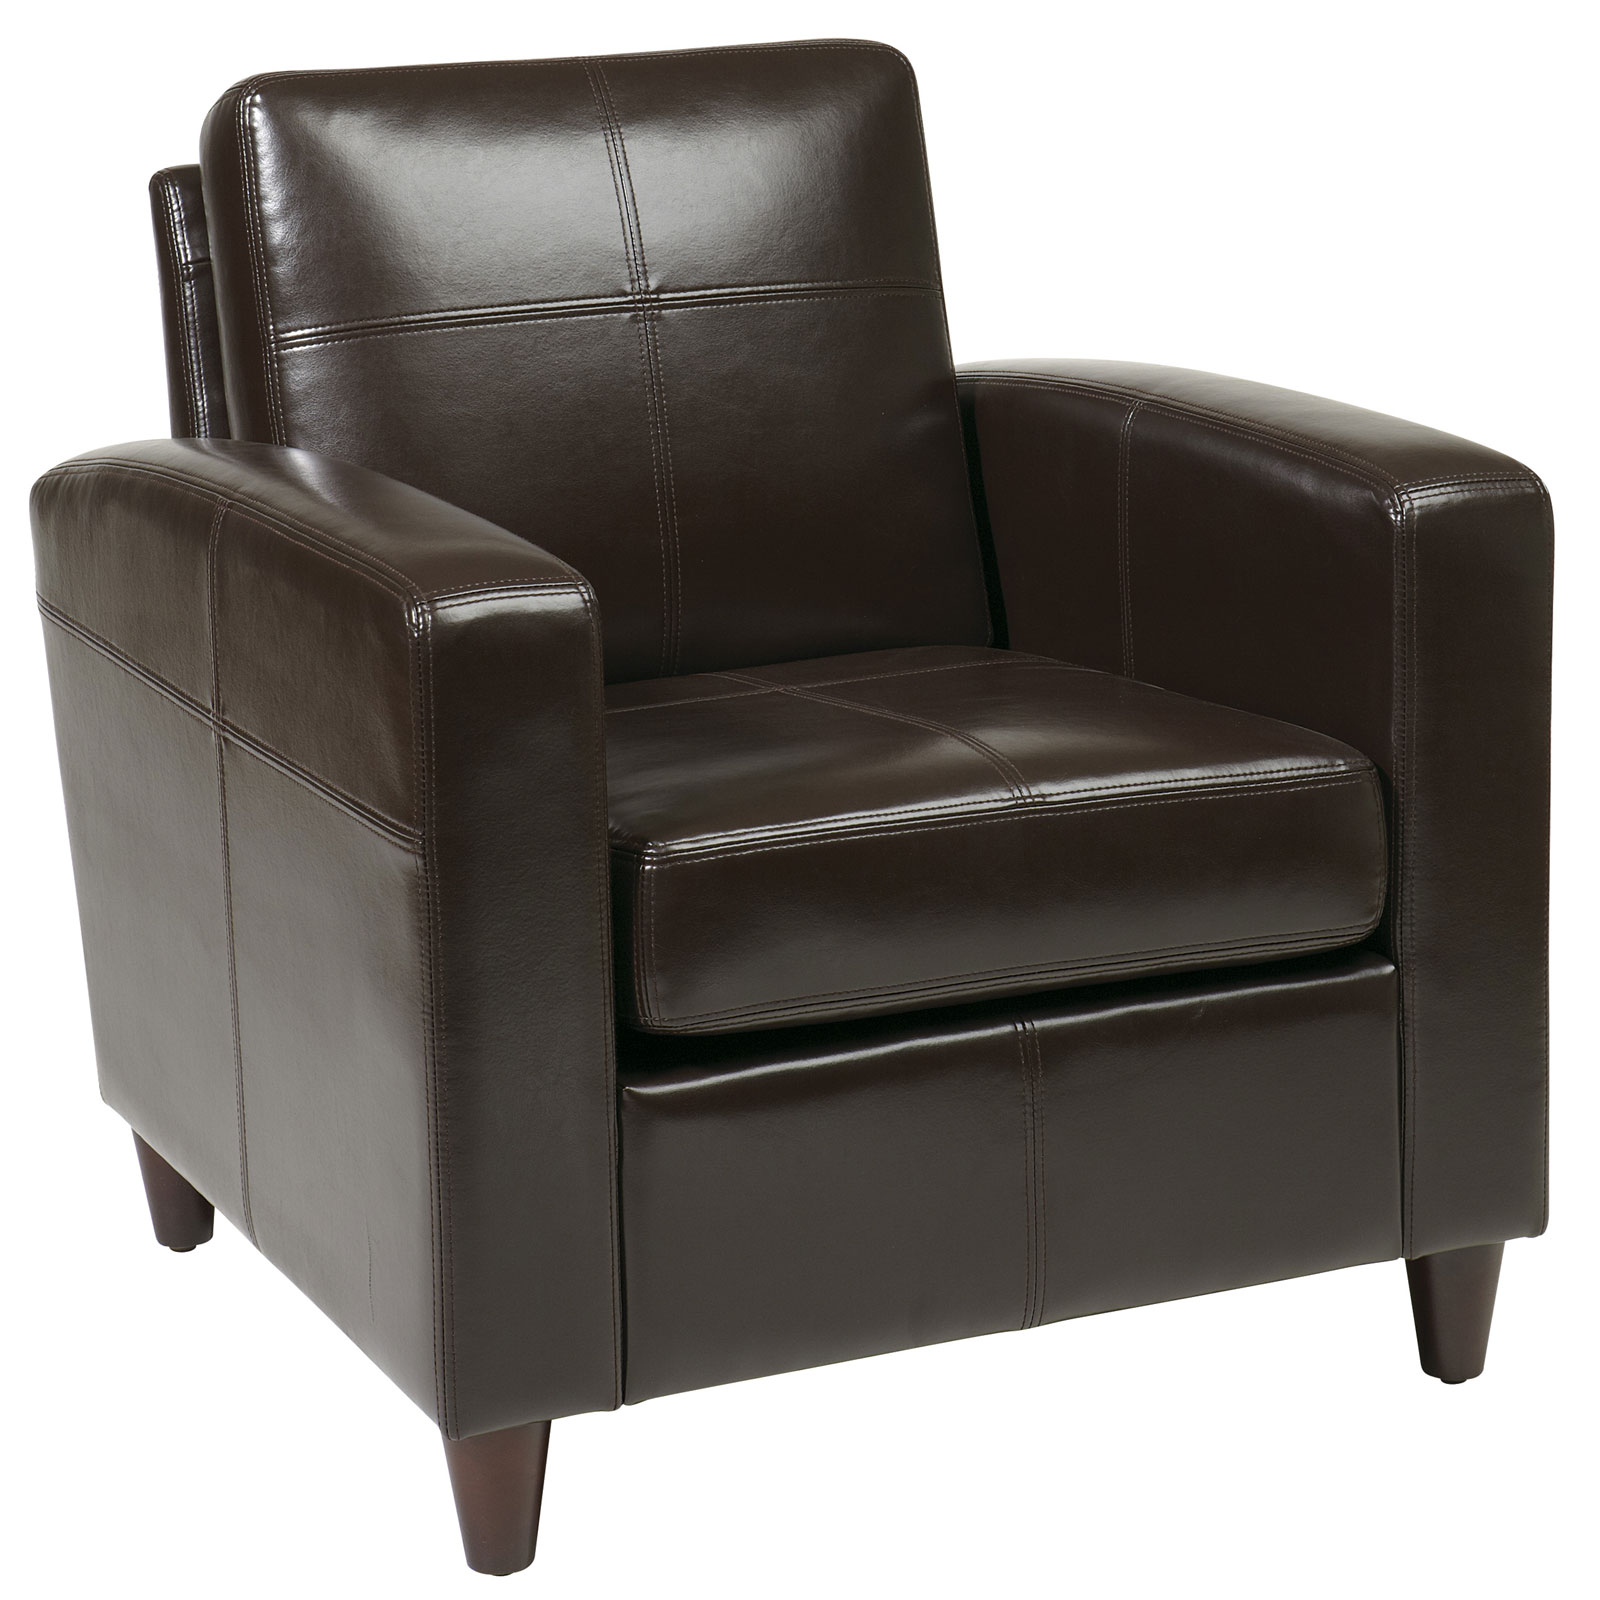 office chair club reviews velvet slipper avenue six venus by star in leather chairs